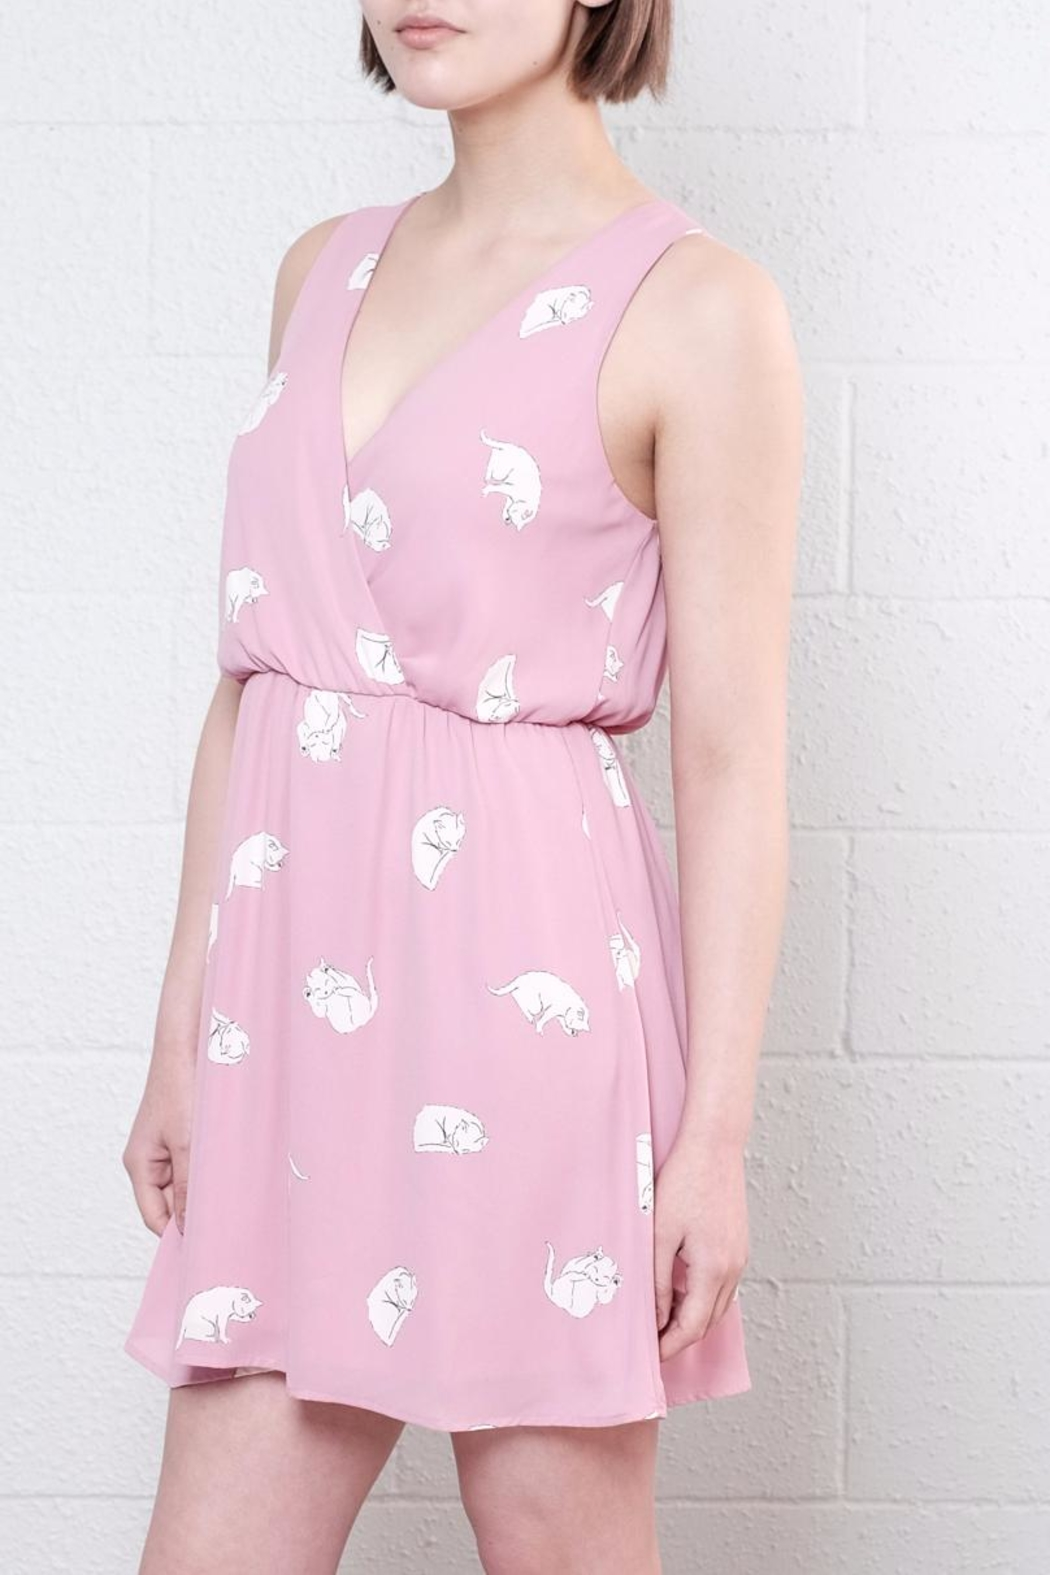 Everly Rowena Cat Dress from Vancouver by 8th & Main — Shoptiques